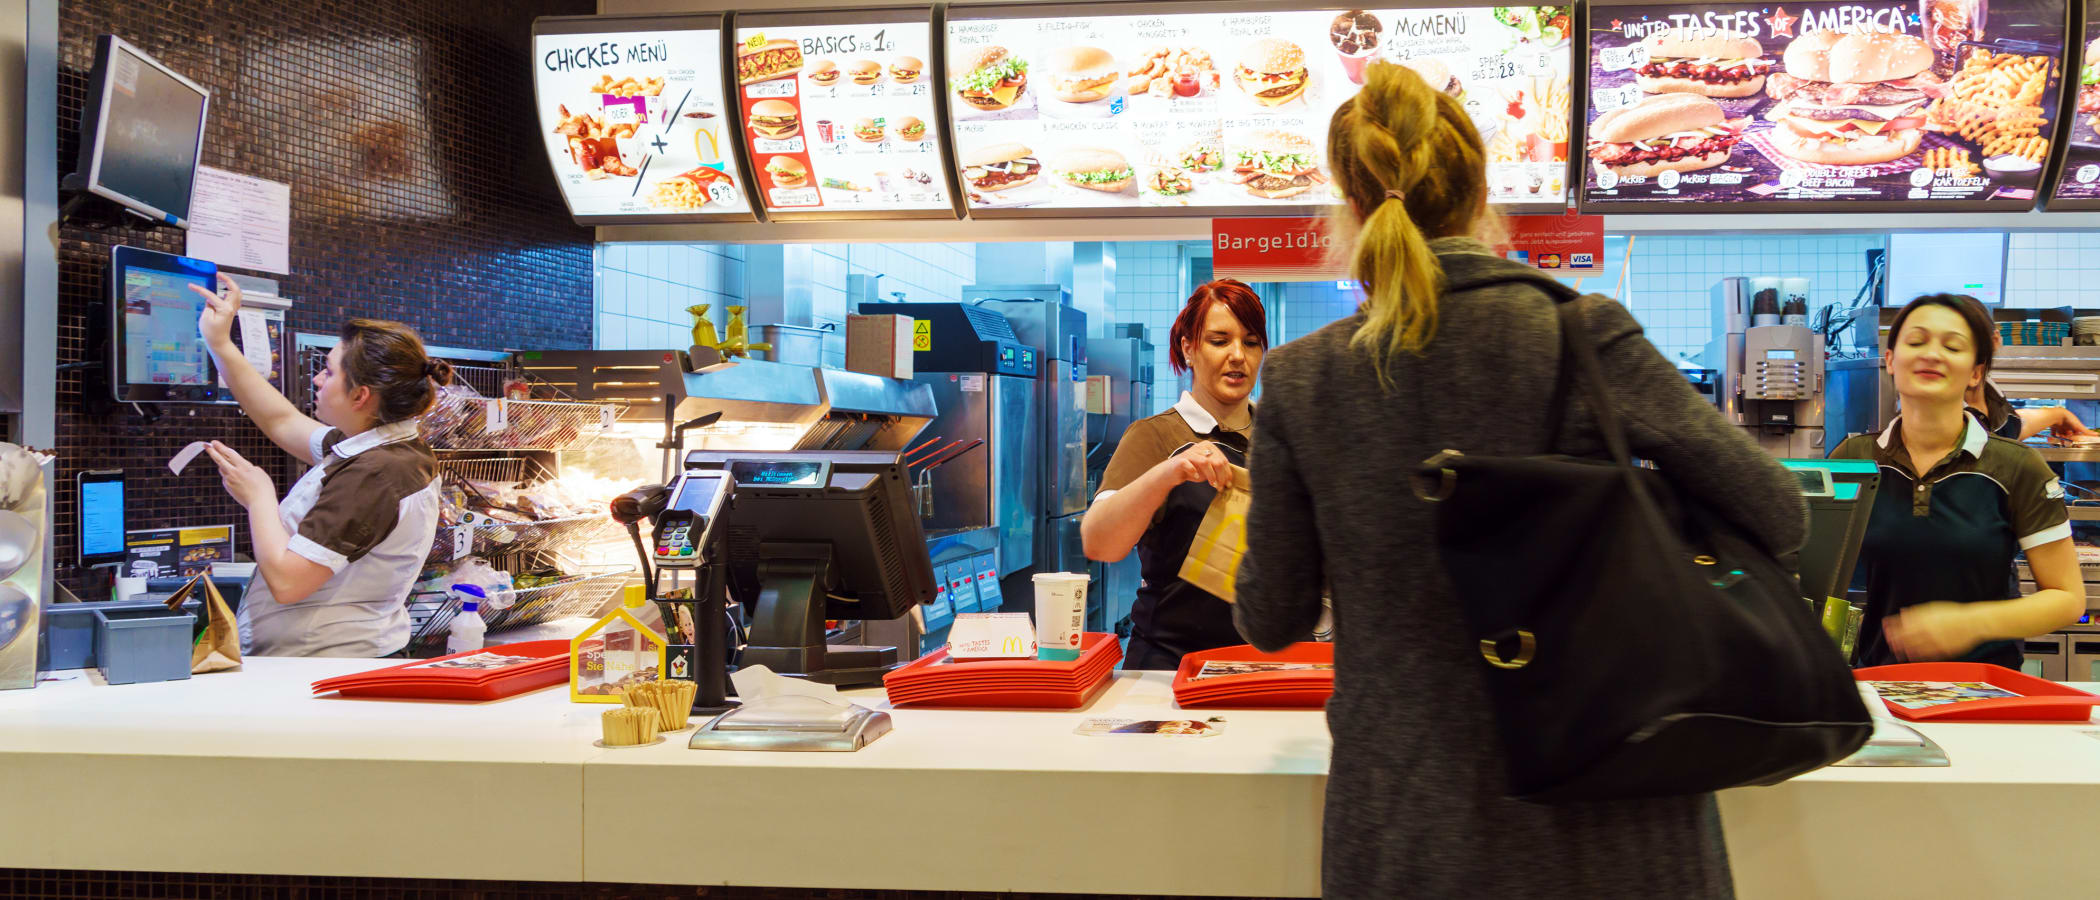 Is a Federal Minimum-Wage Hike Good for Business, or Does It Cost Too Much?